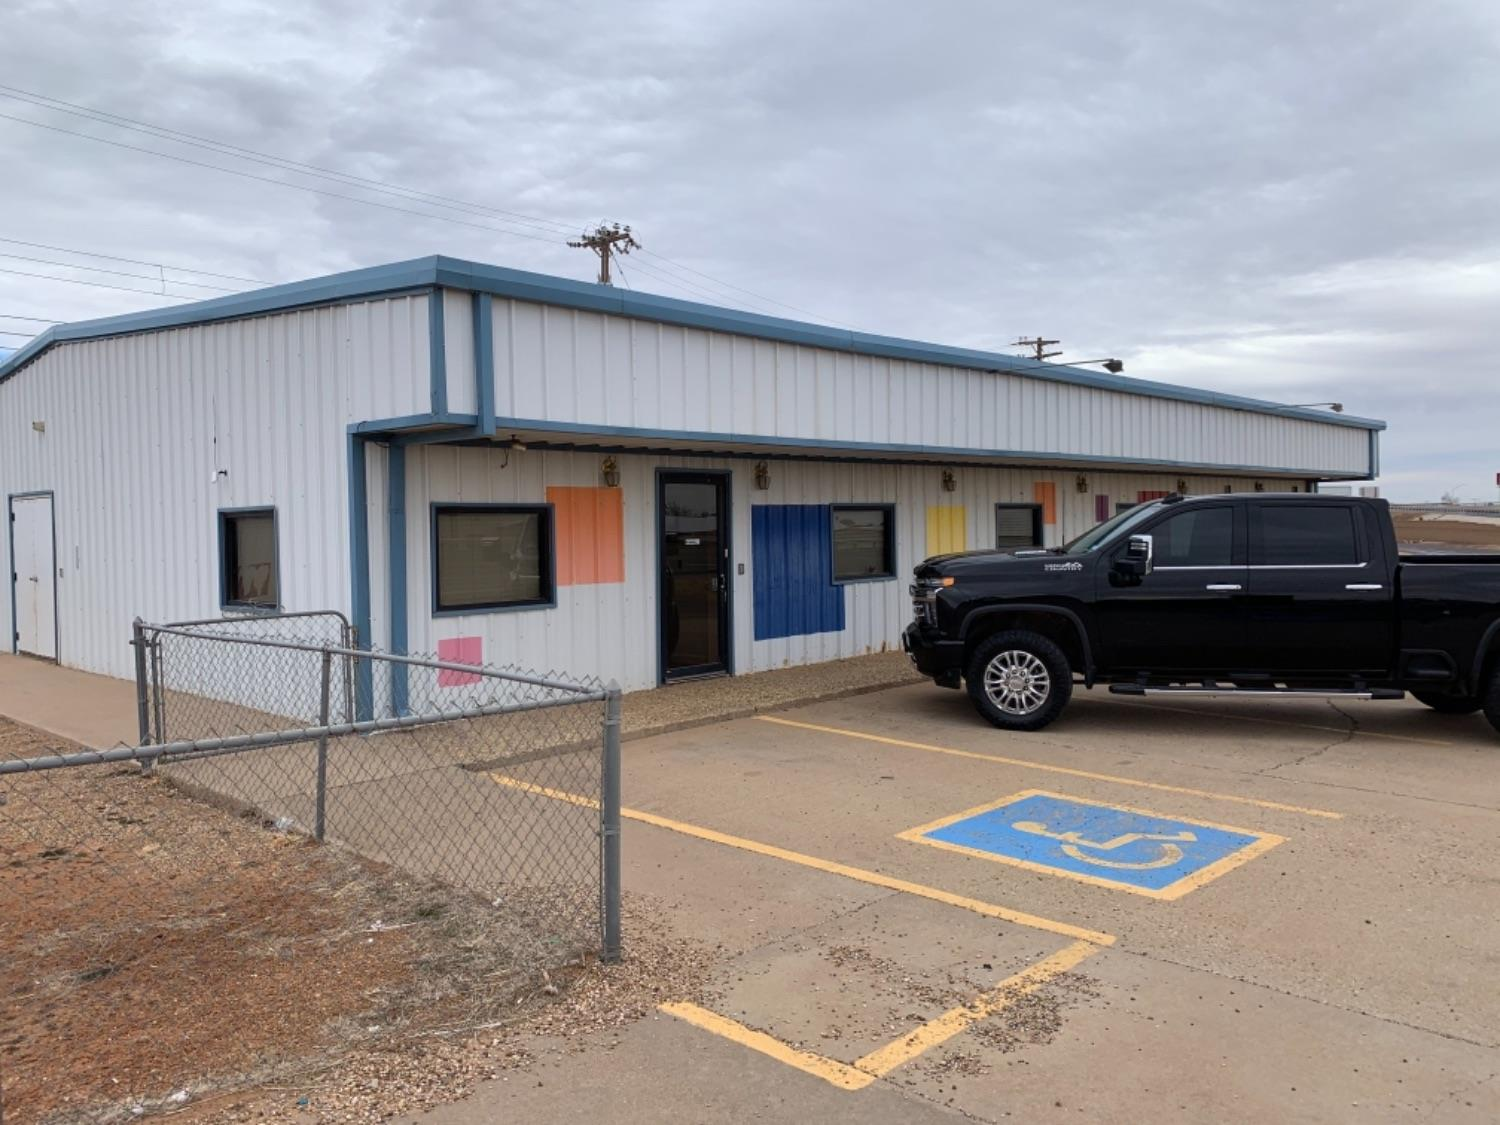 Nice Free Standing building with HWY frontage on 62-82.  Could be used for several businesses its last use was a day care.